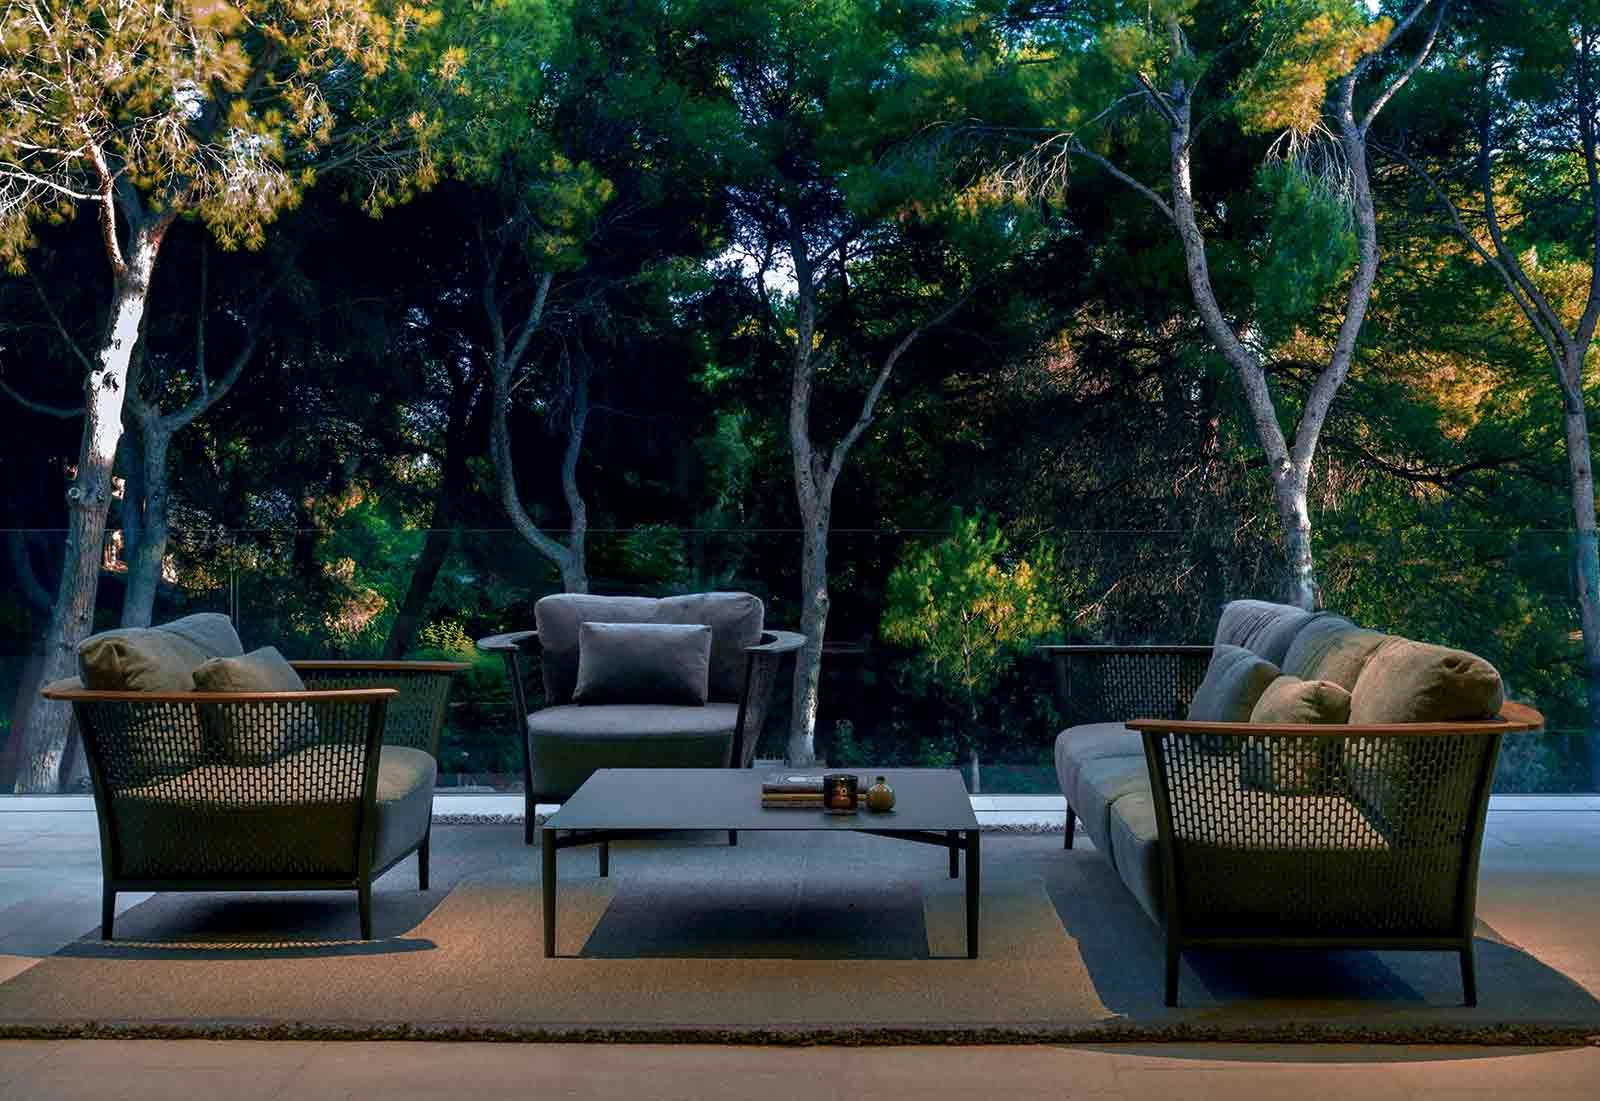 Design Marco Acerbis. Sofa, armchairs and coffee table in aluminium and teak, a luxurious and modern outdoor lounge for garden, yacht, poolside. Free delivery.